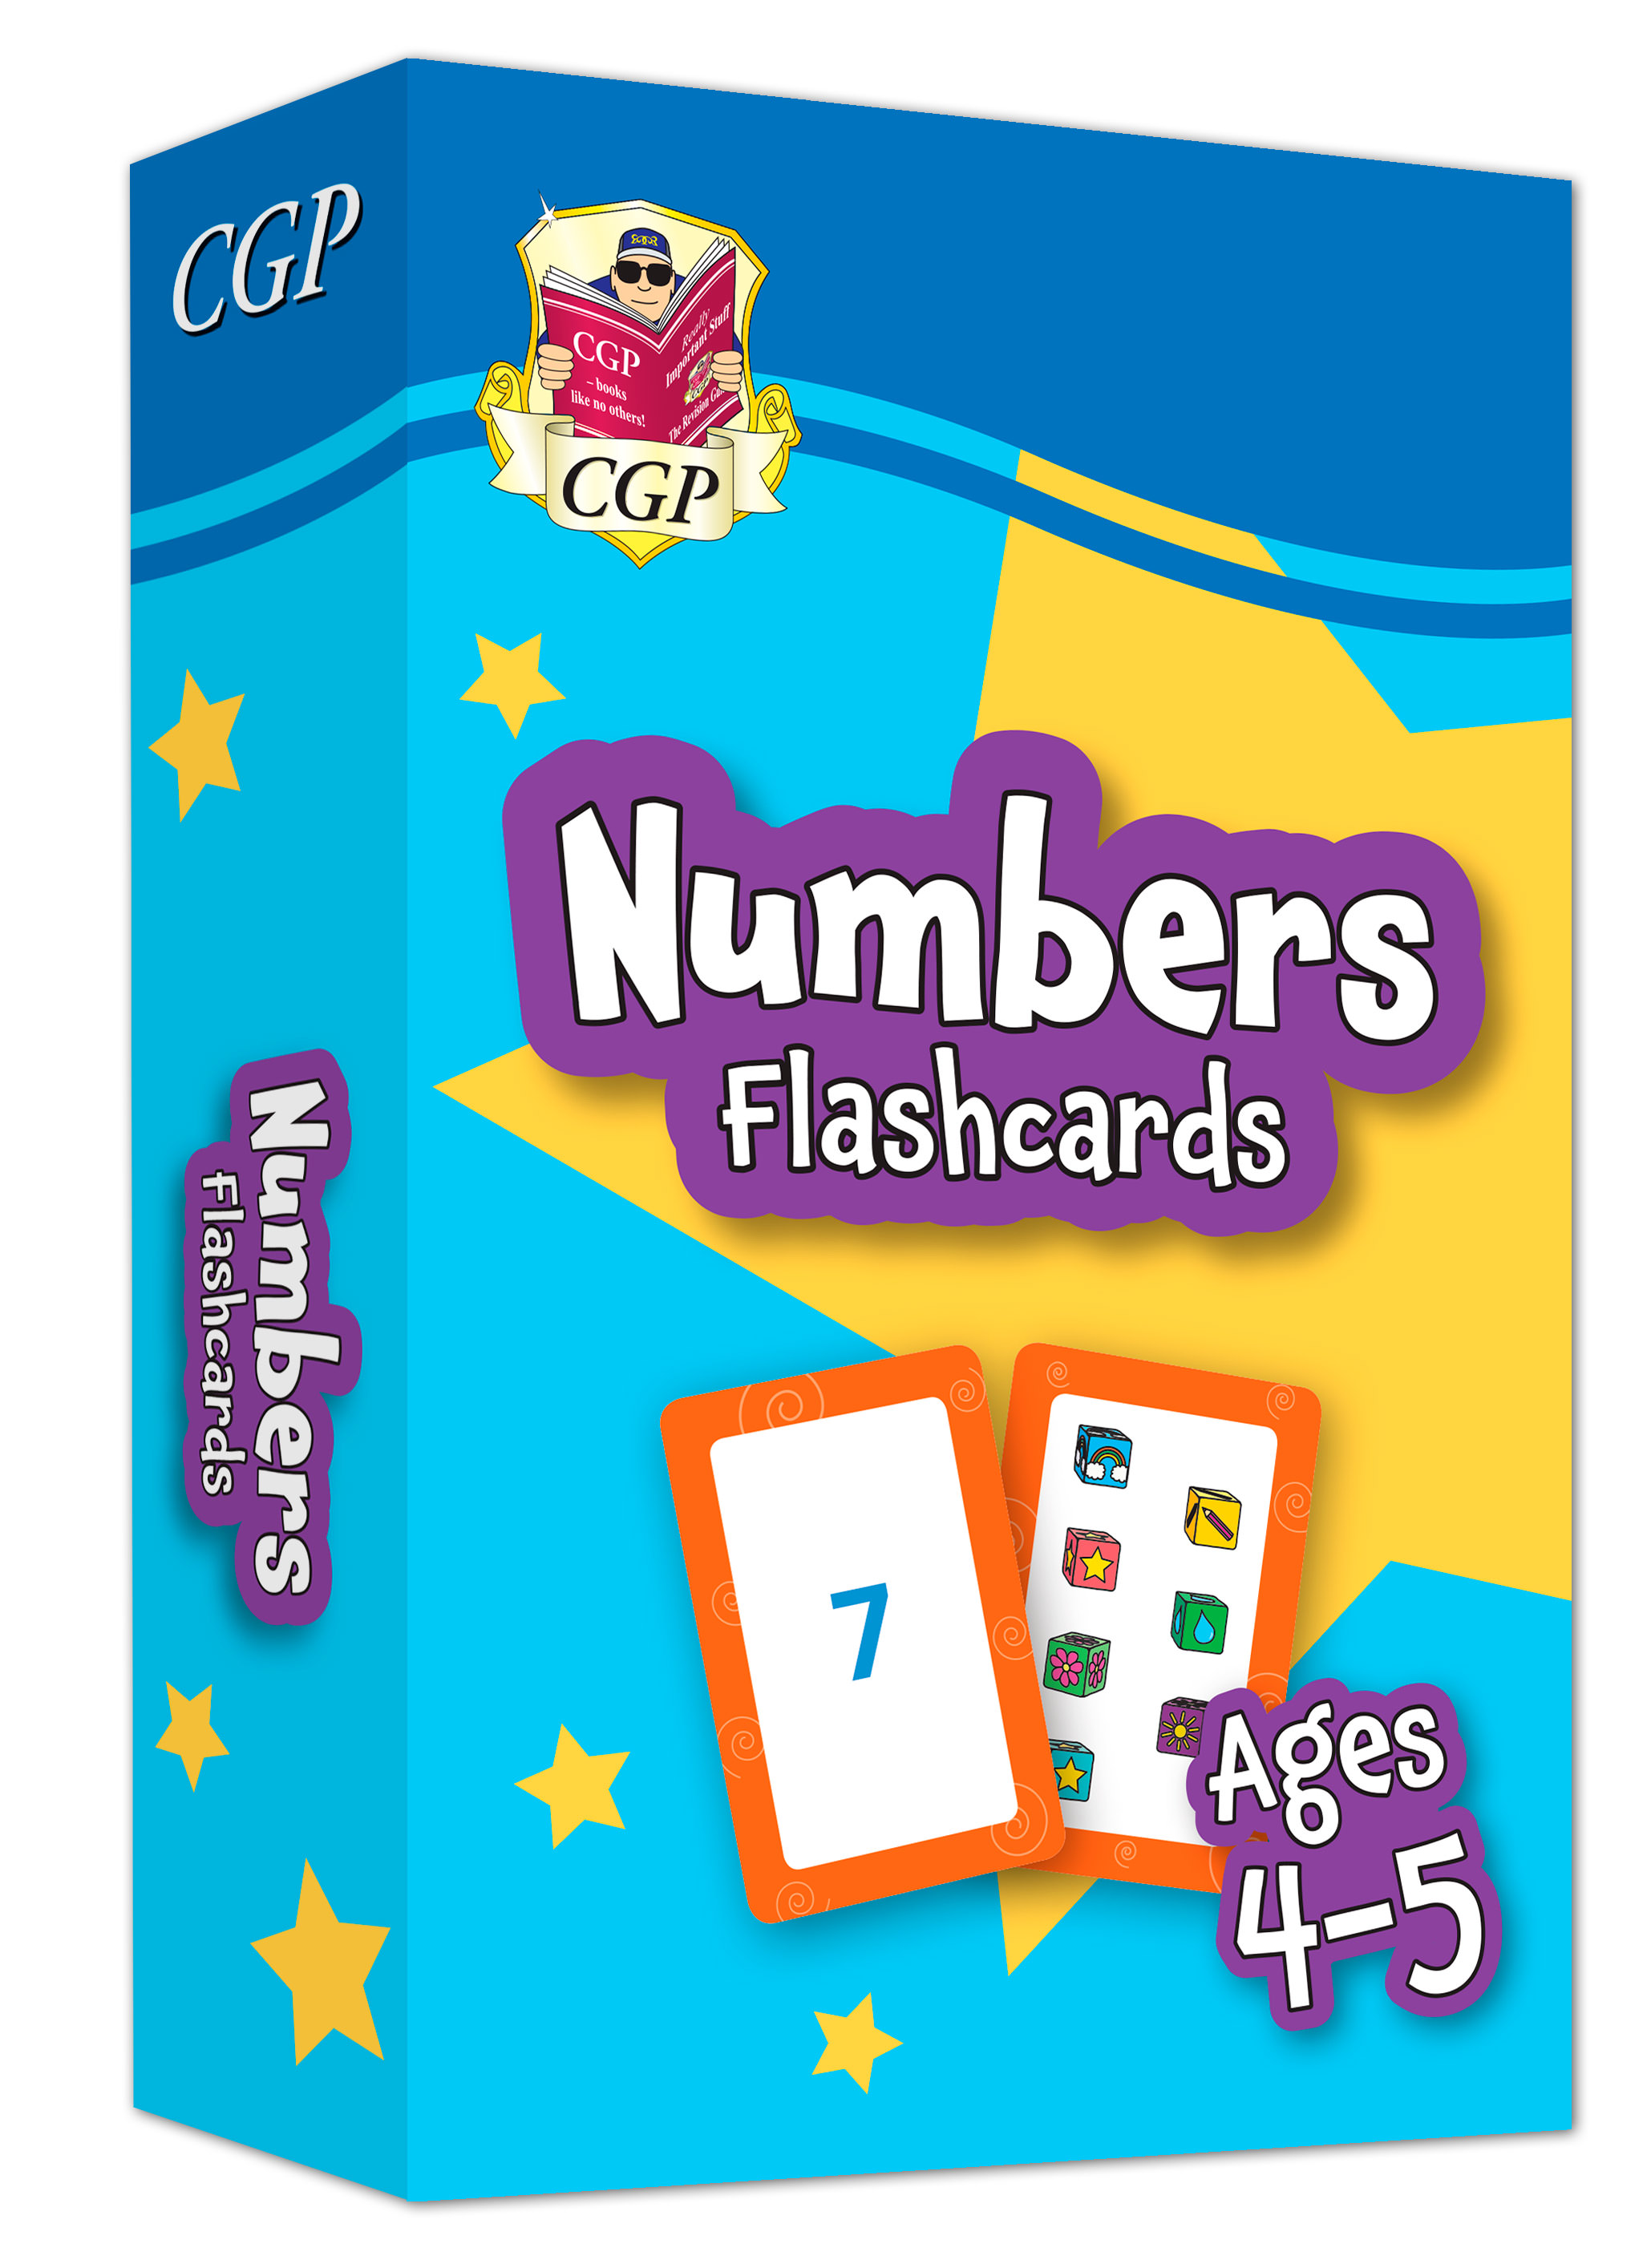 MPFNRF01DK - New Numbers Home Learning Flashcards for Ages 4-5